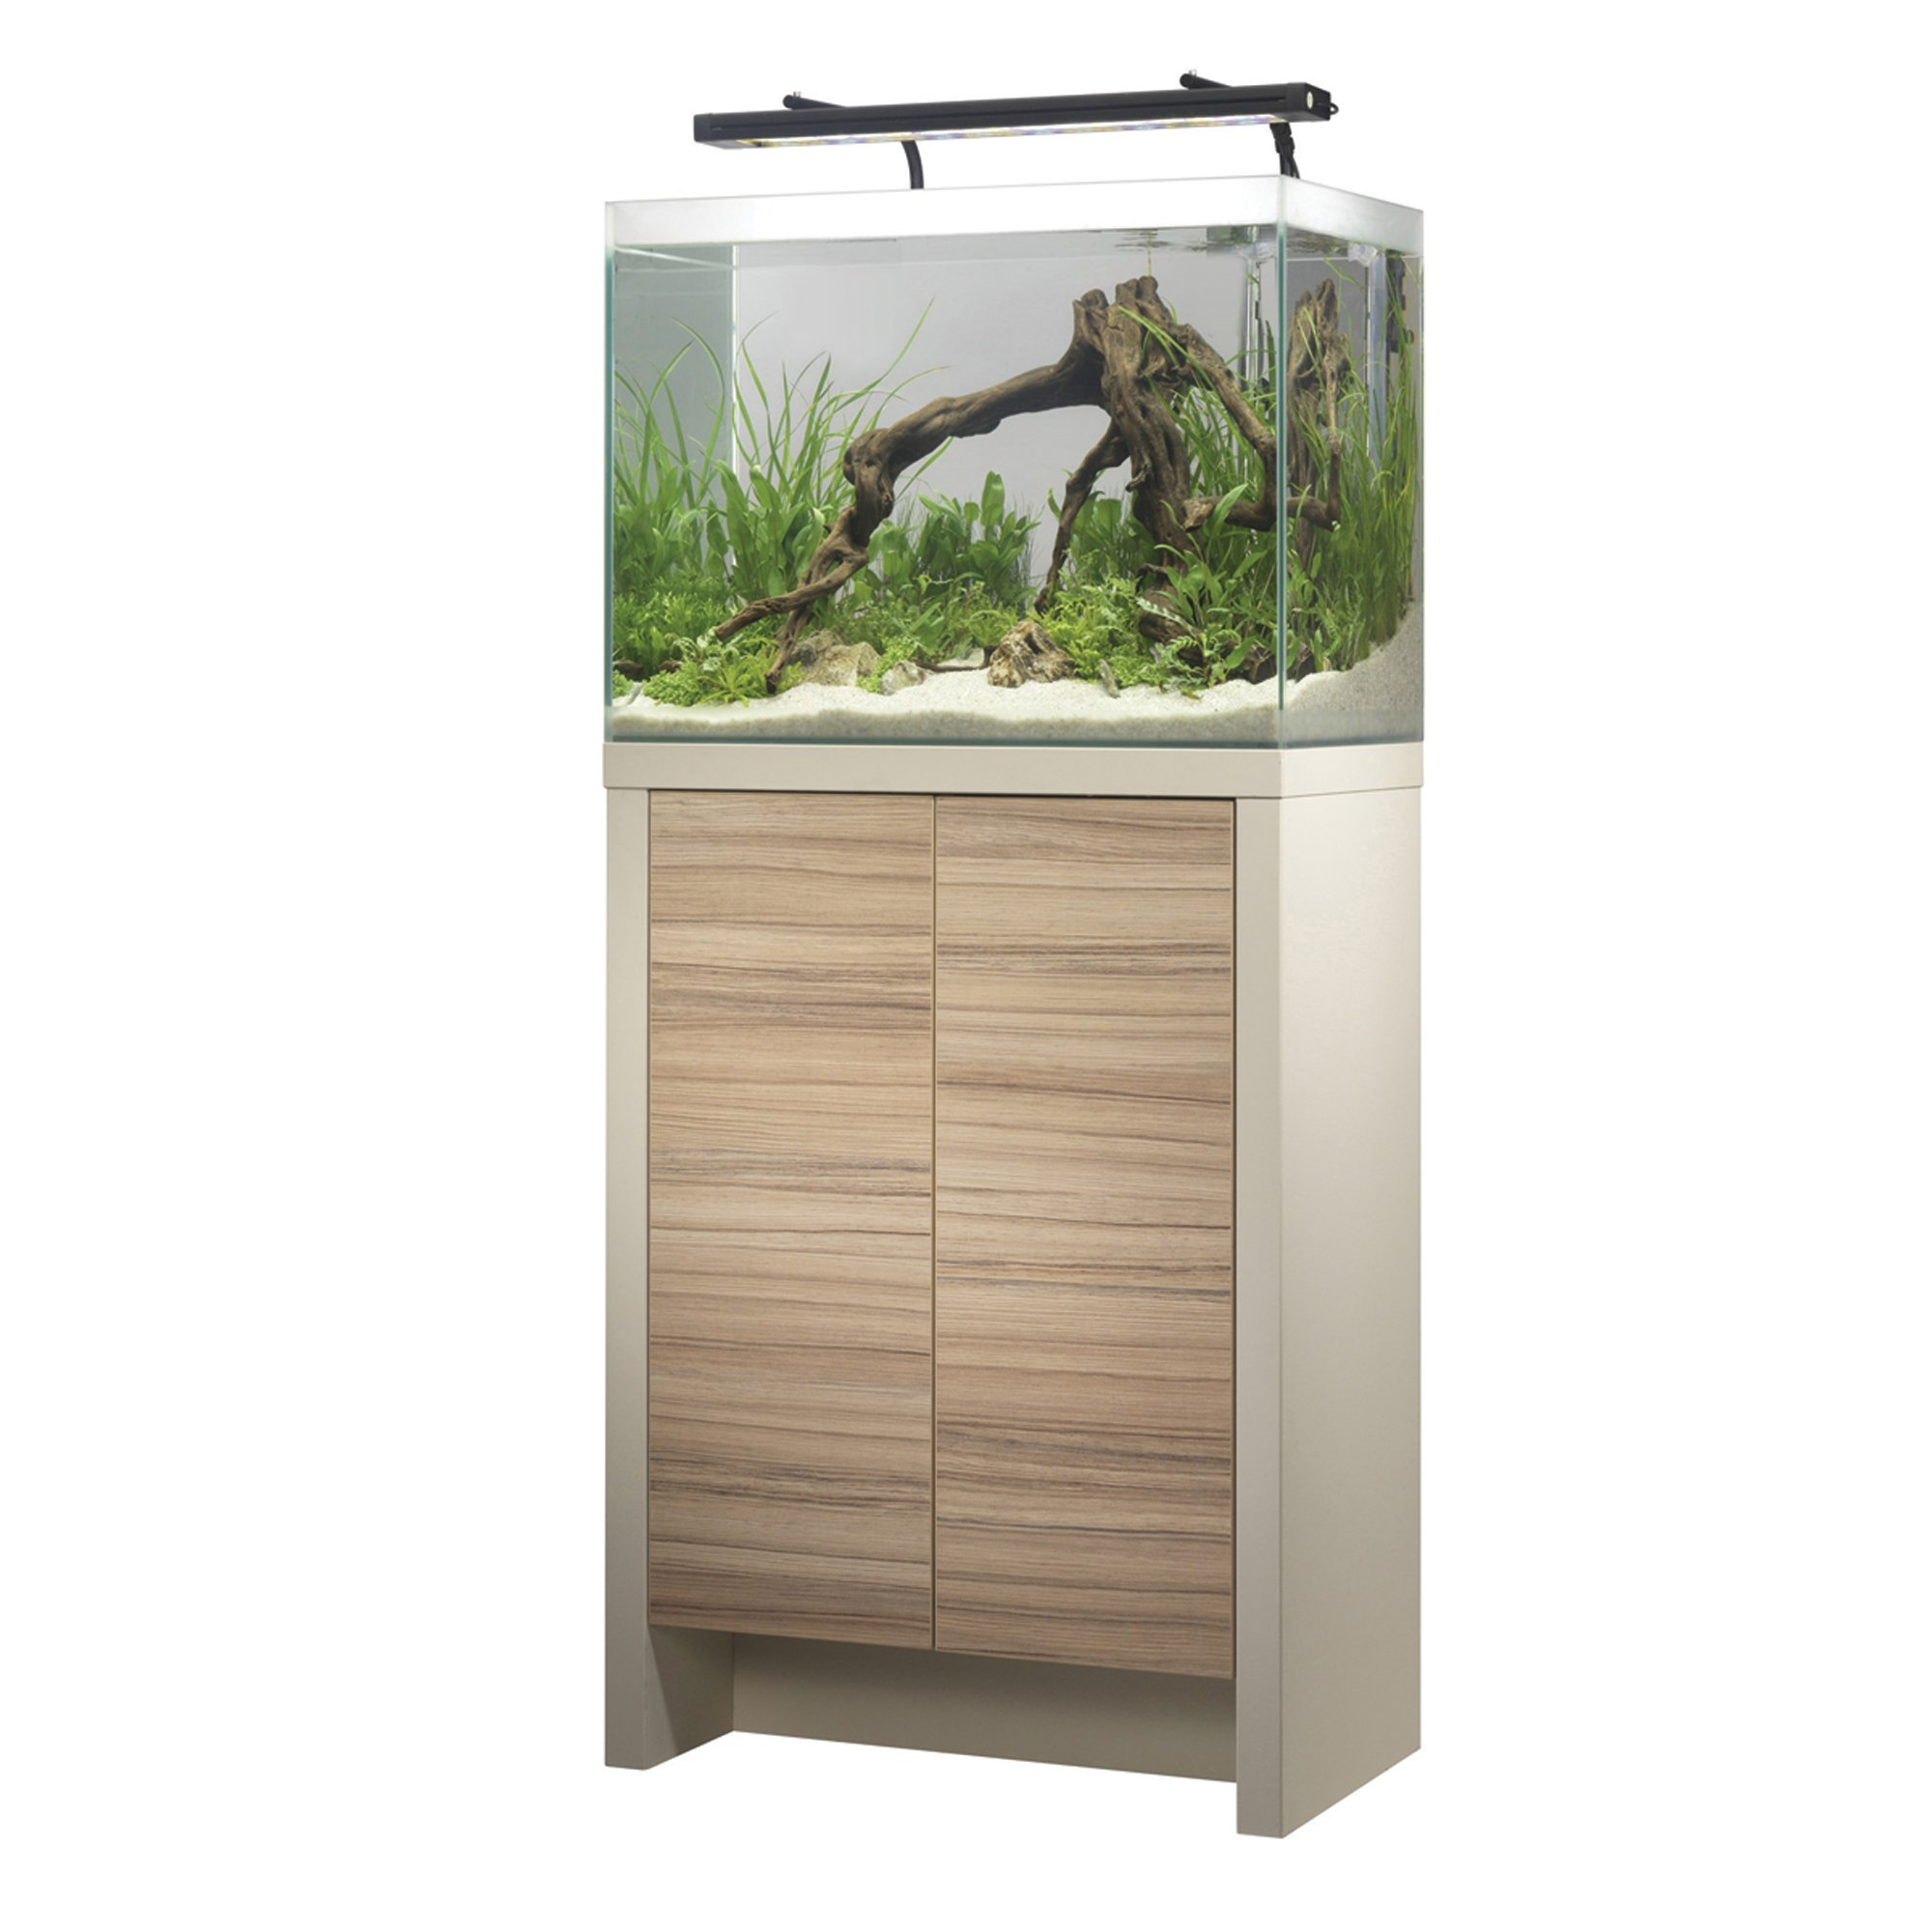 fluval freshwater f60 aquarium set petco. Black Bedroom Furniture Sets. Home Design Ideas